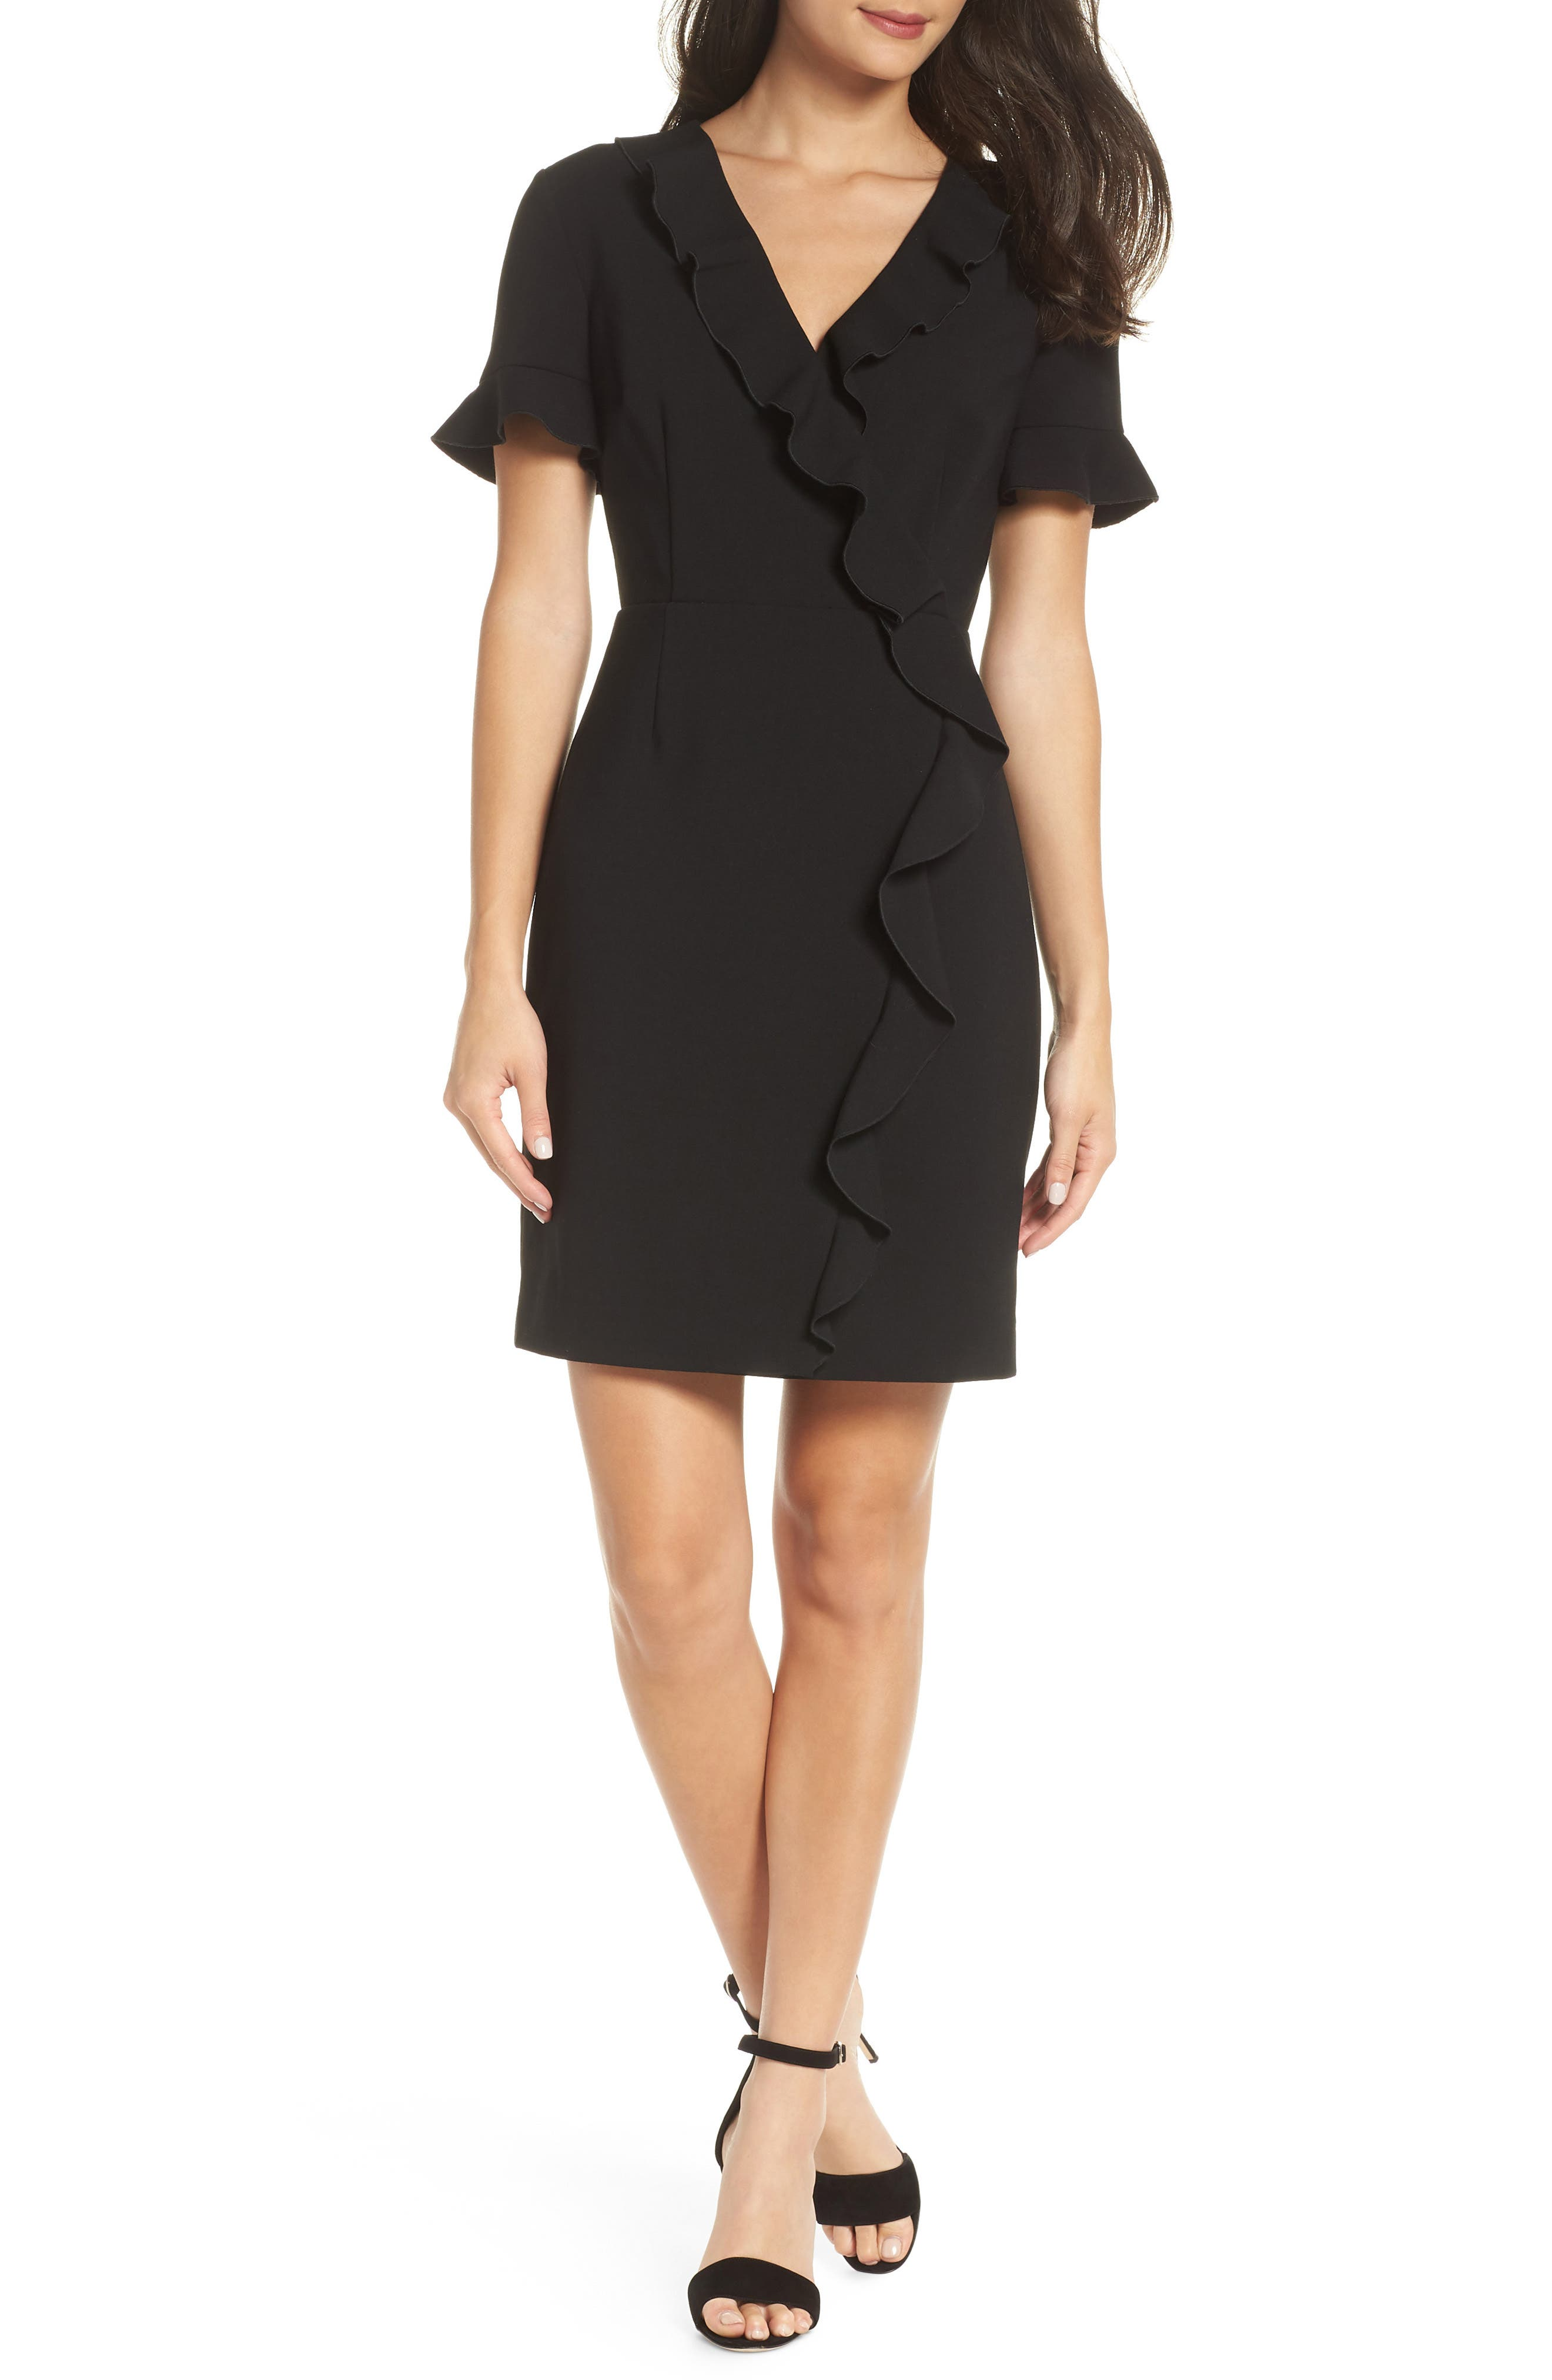 French Connection Alianor Stretch Frill Dress, Black